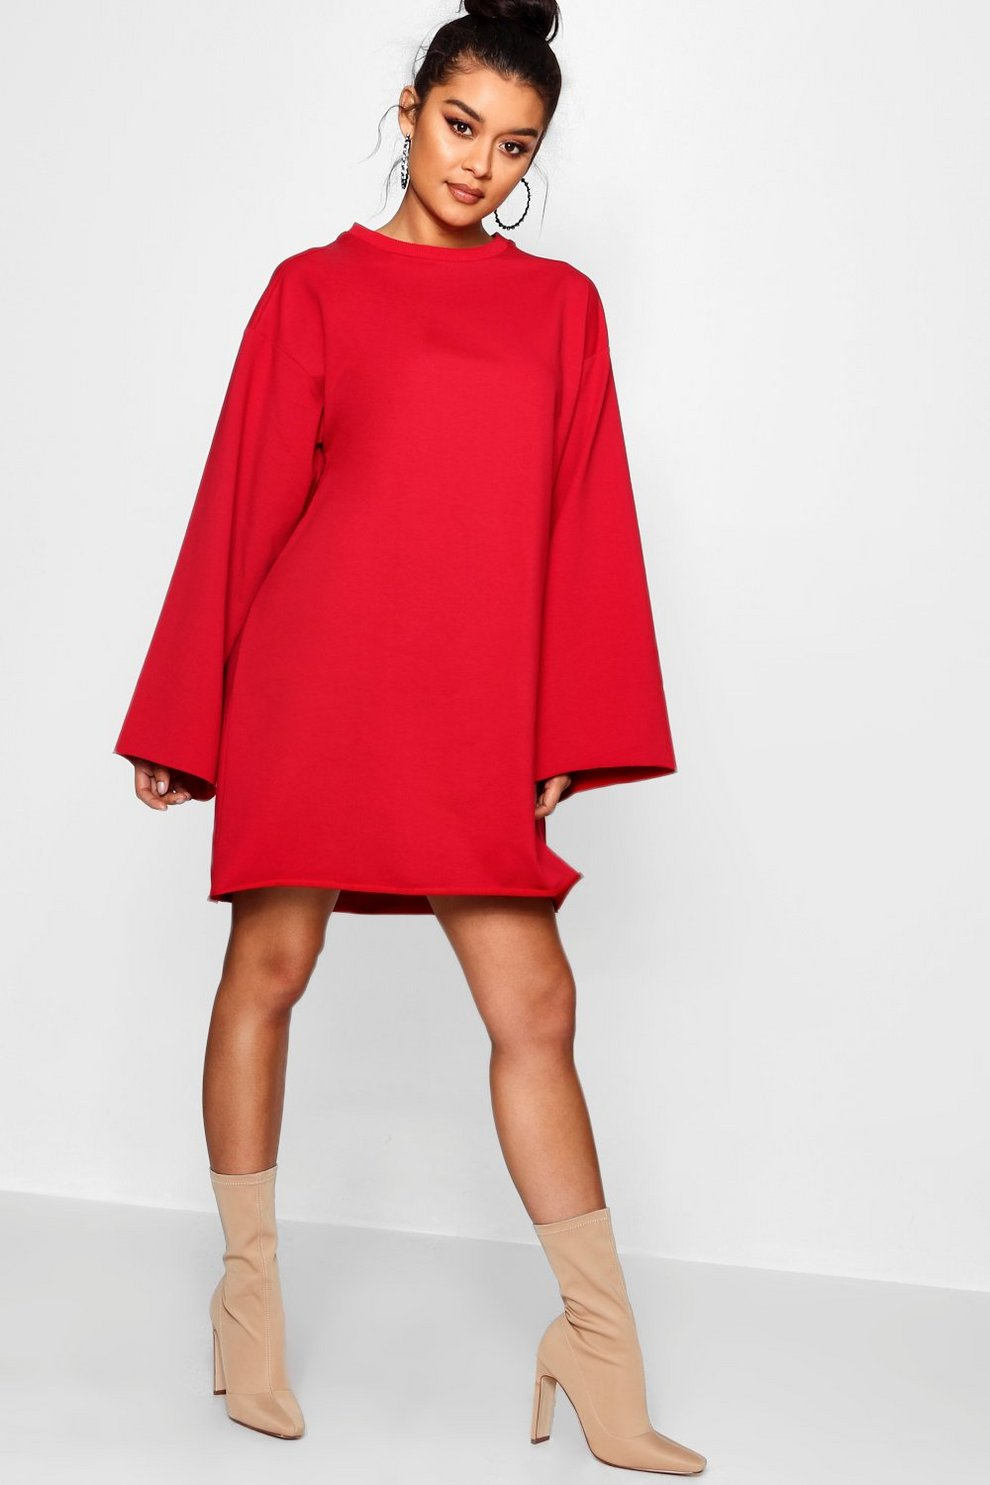 Outlet Countdown Package Websites Sale Online Boohoo Wide Sleeve Raw Edge Sweat Dress Best Cheap Price Pre Order Cheap Online Discount Reliable O7YNr